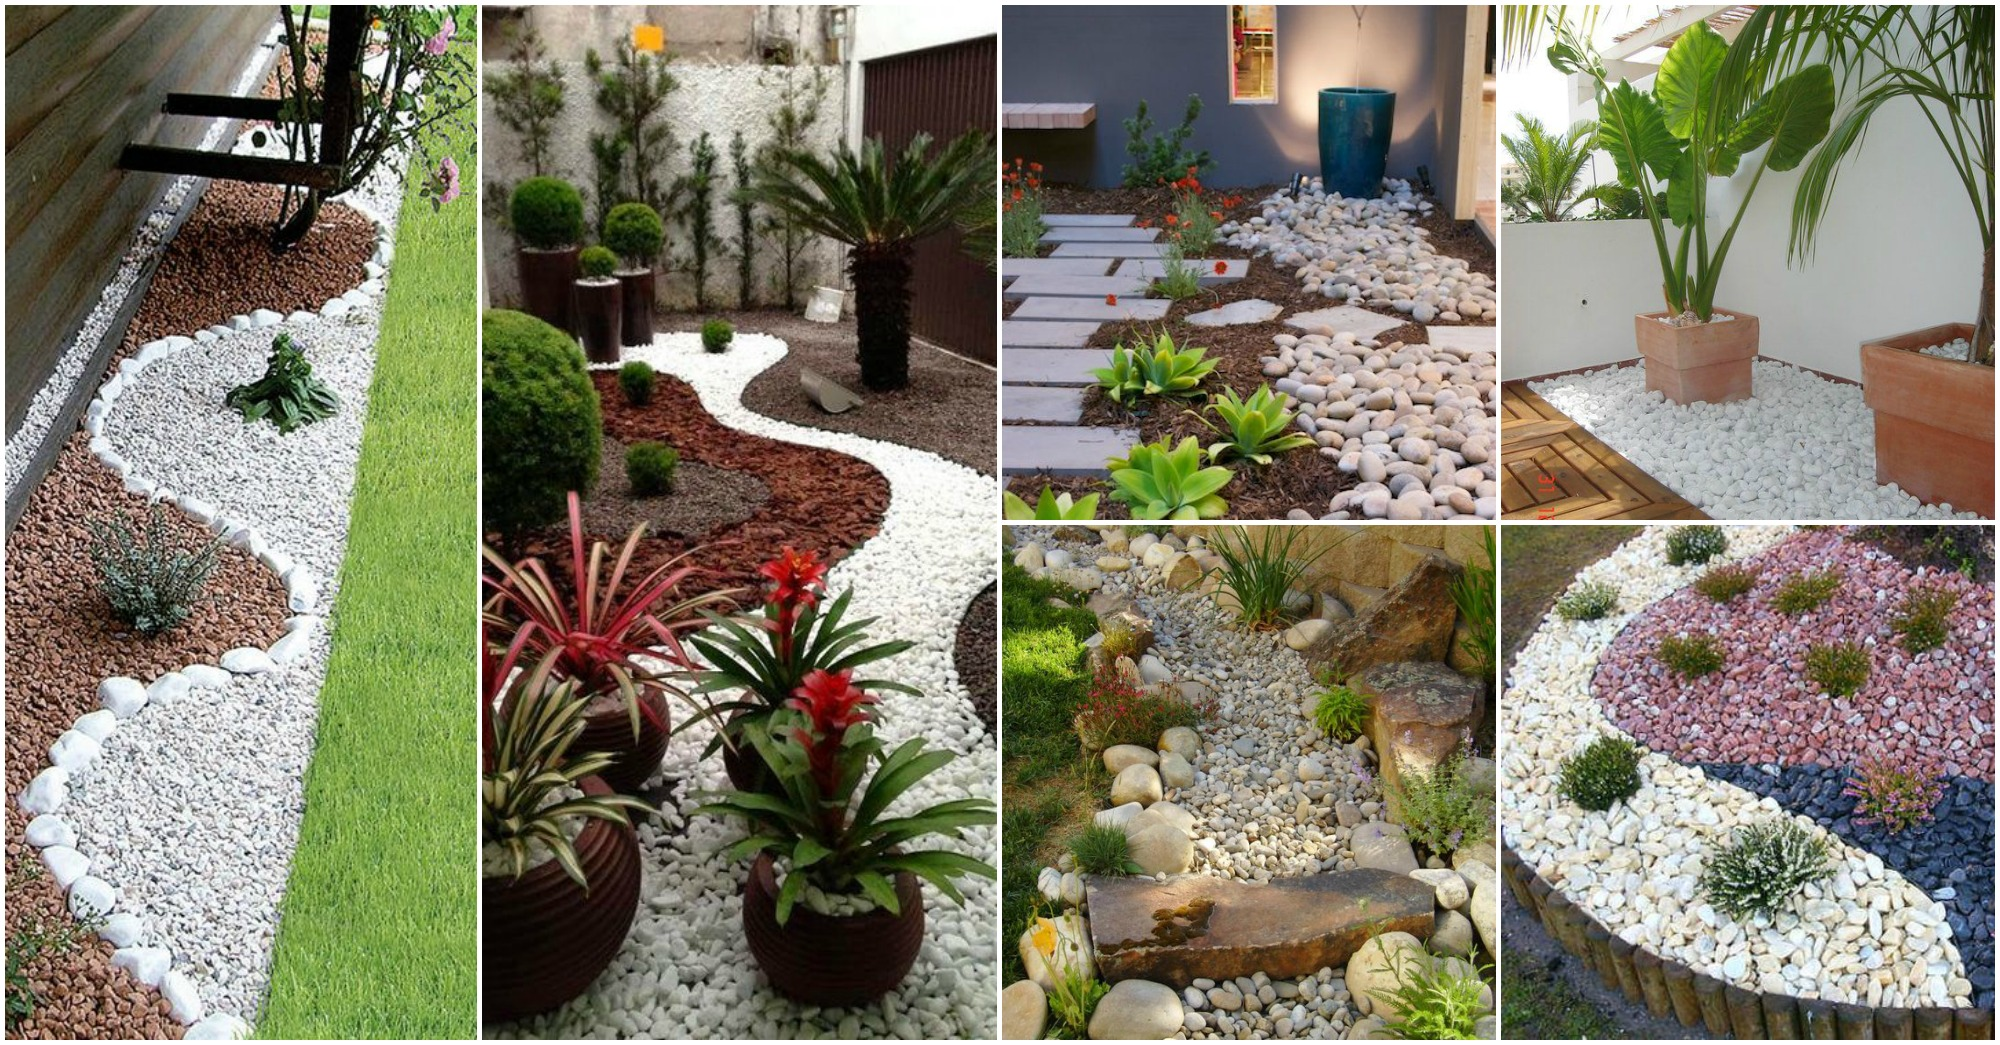 20 hermosas ideas para decorar tu jard n con piedras for Como decorar un jardin con piedras